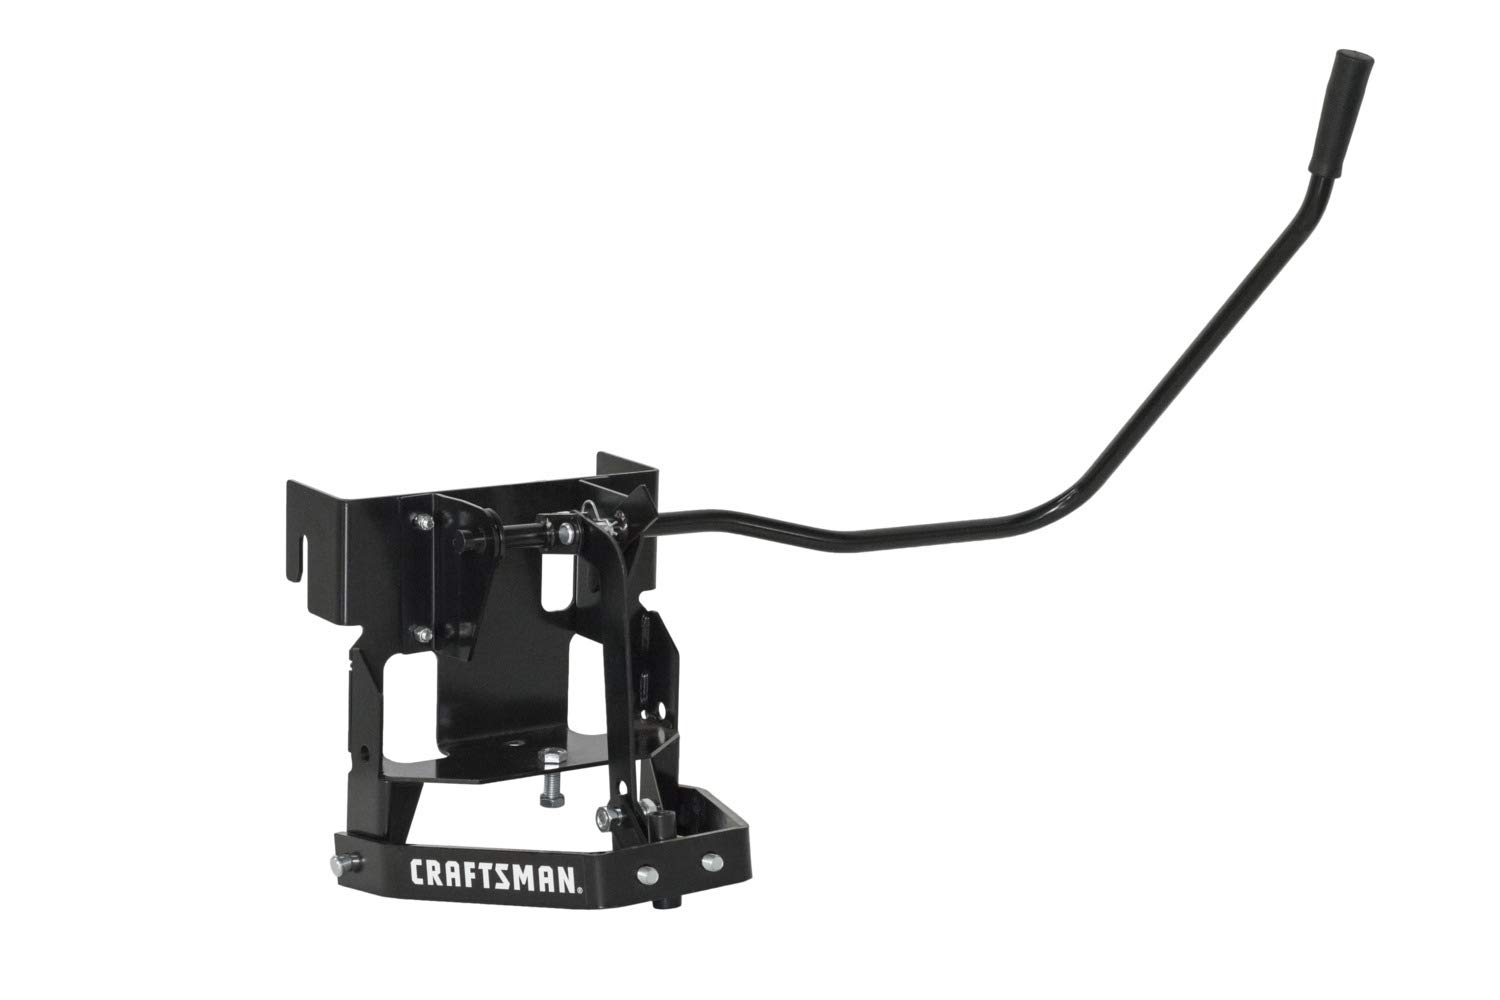 CRAFTSMAN CMXGZBF7124586 Garden Tractor Sleeve Hitch, Black